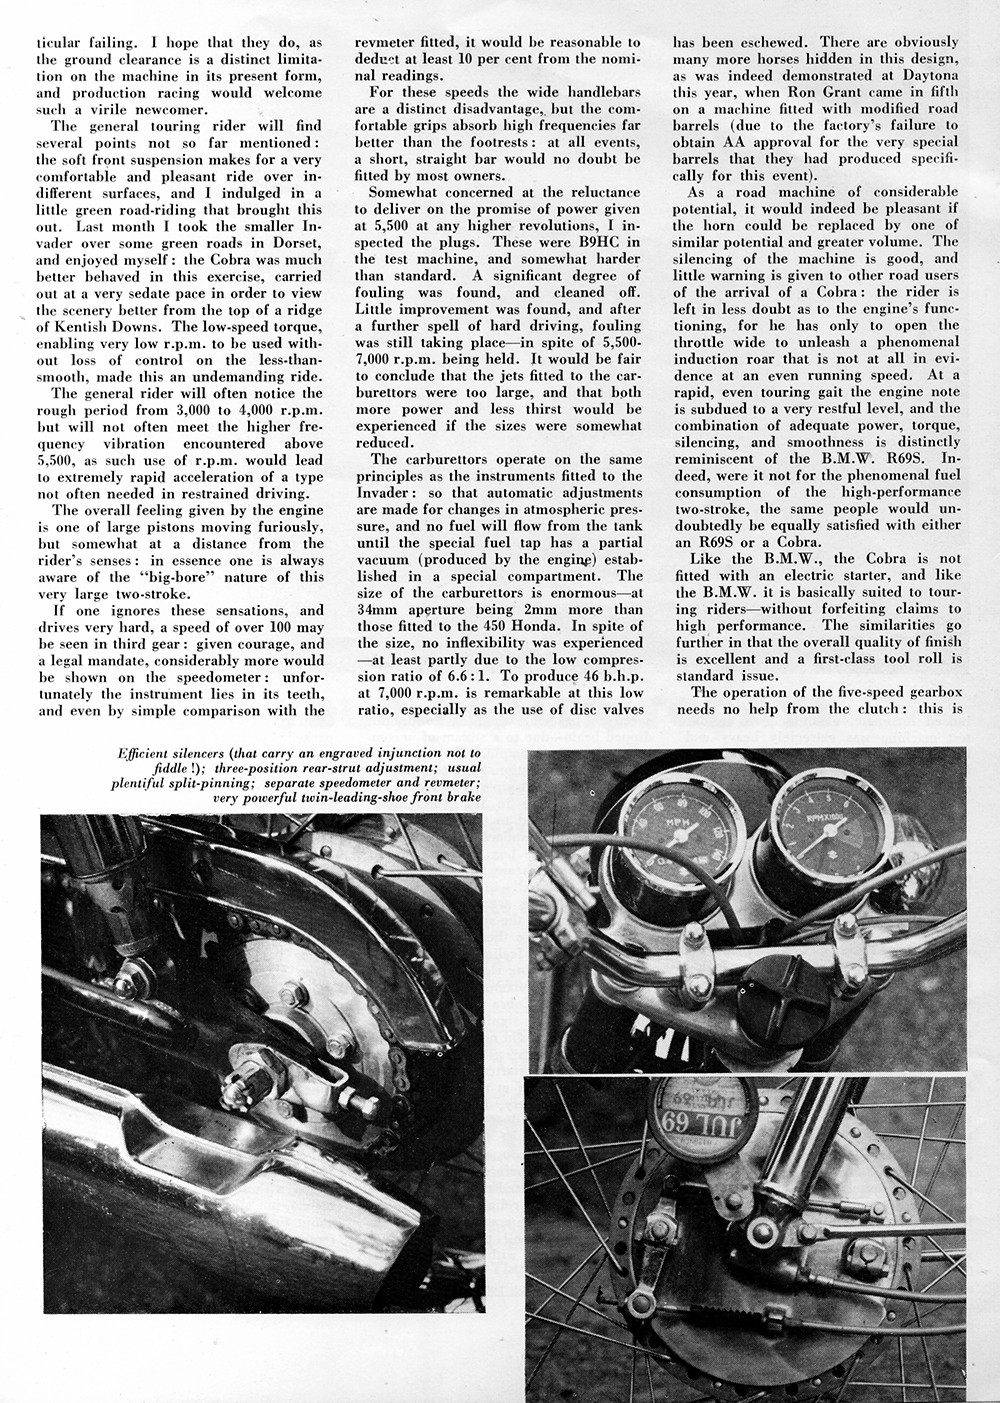 1969 Suzuki Cobra road test 2.jpg